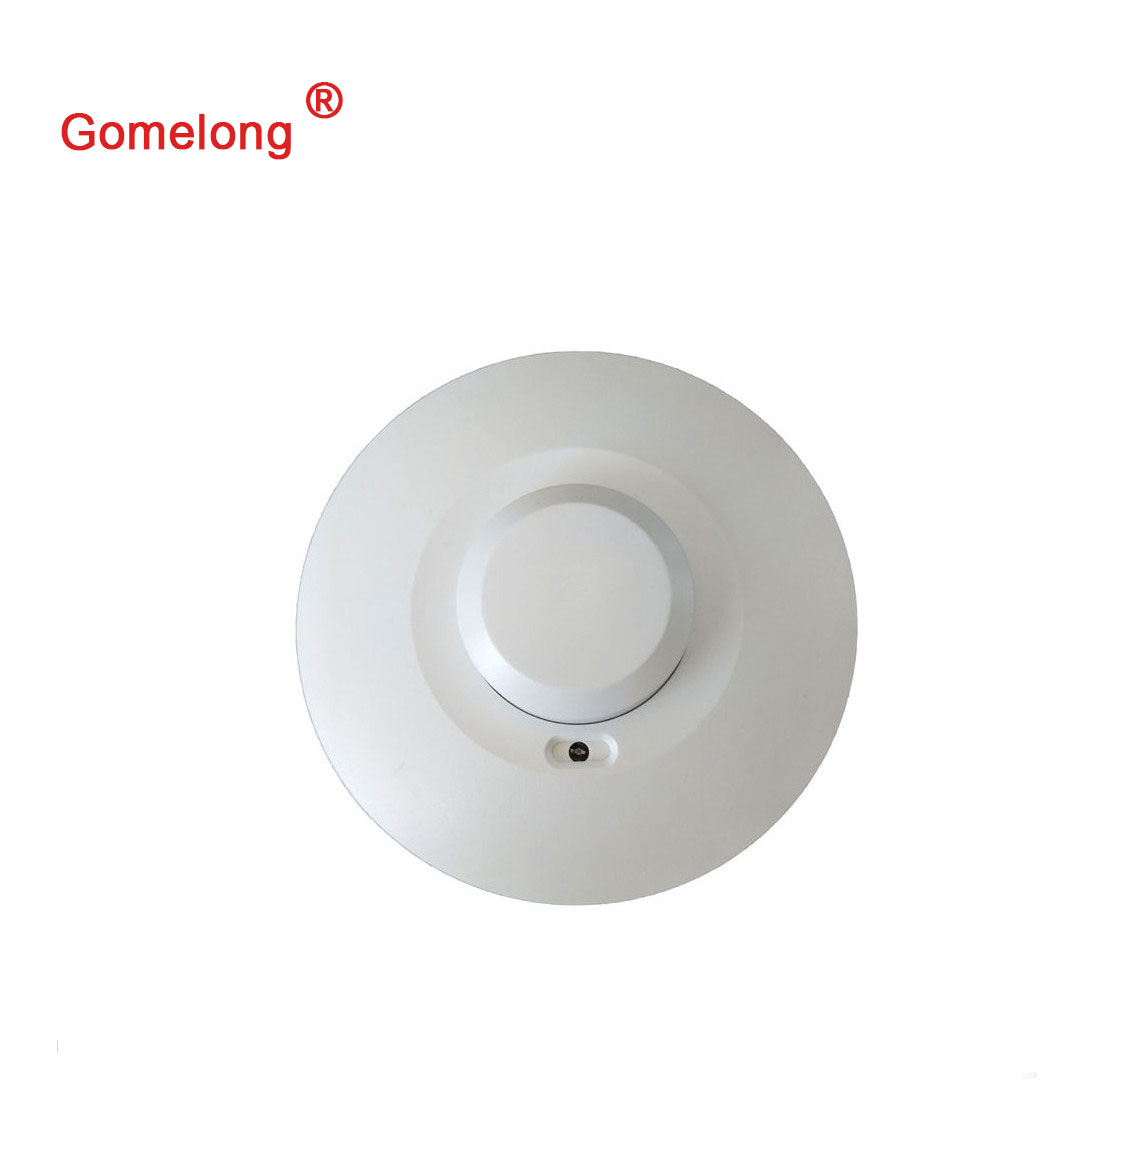 Intelligent 360 Degree Automatic Daylight Light Sensor Switches Human Body Induction Detector Sensor